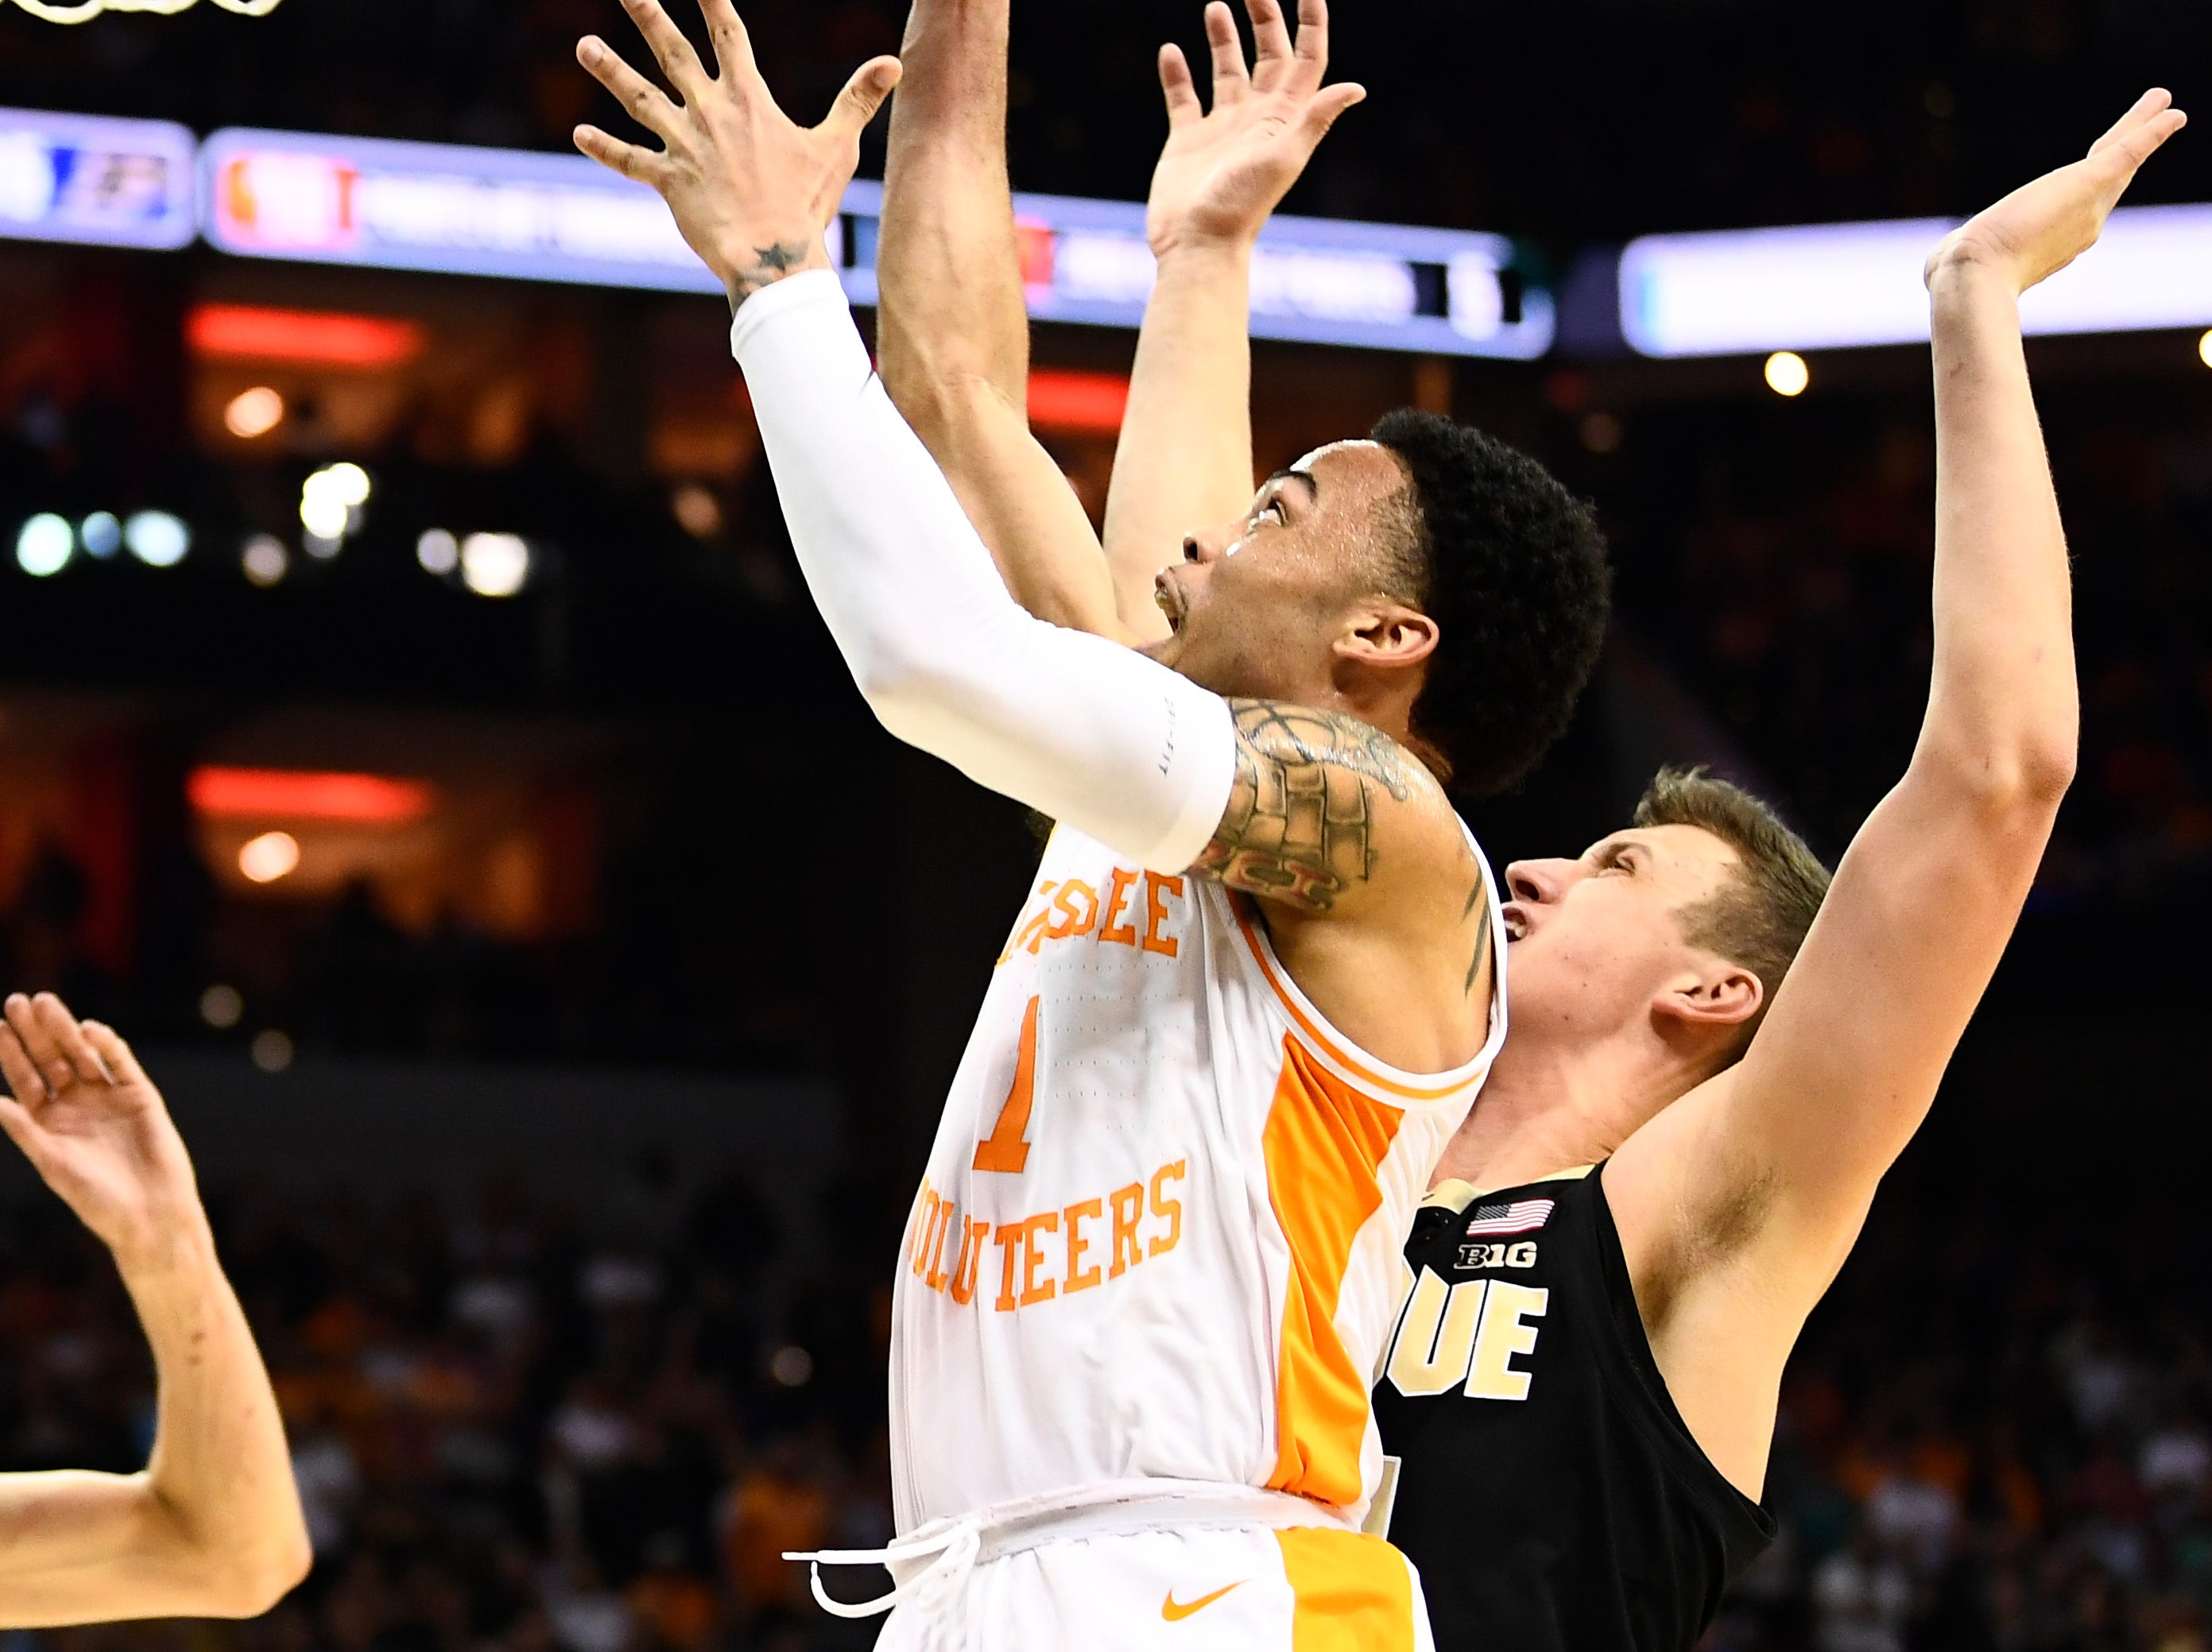 Tennessee guard Lamonte Turner (1) goes up for a shot during the Tennessee VolunteersÕ basketball Sweet 16 game against the Purdue Boilermakers in the NCAA Tournament held at the KFC Yum! Center in Louisville, Ky., on Thursday, March 28, 2019.